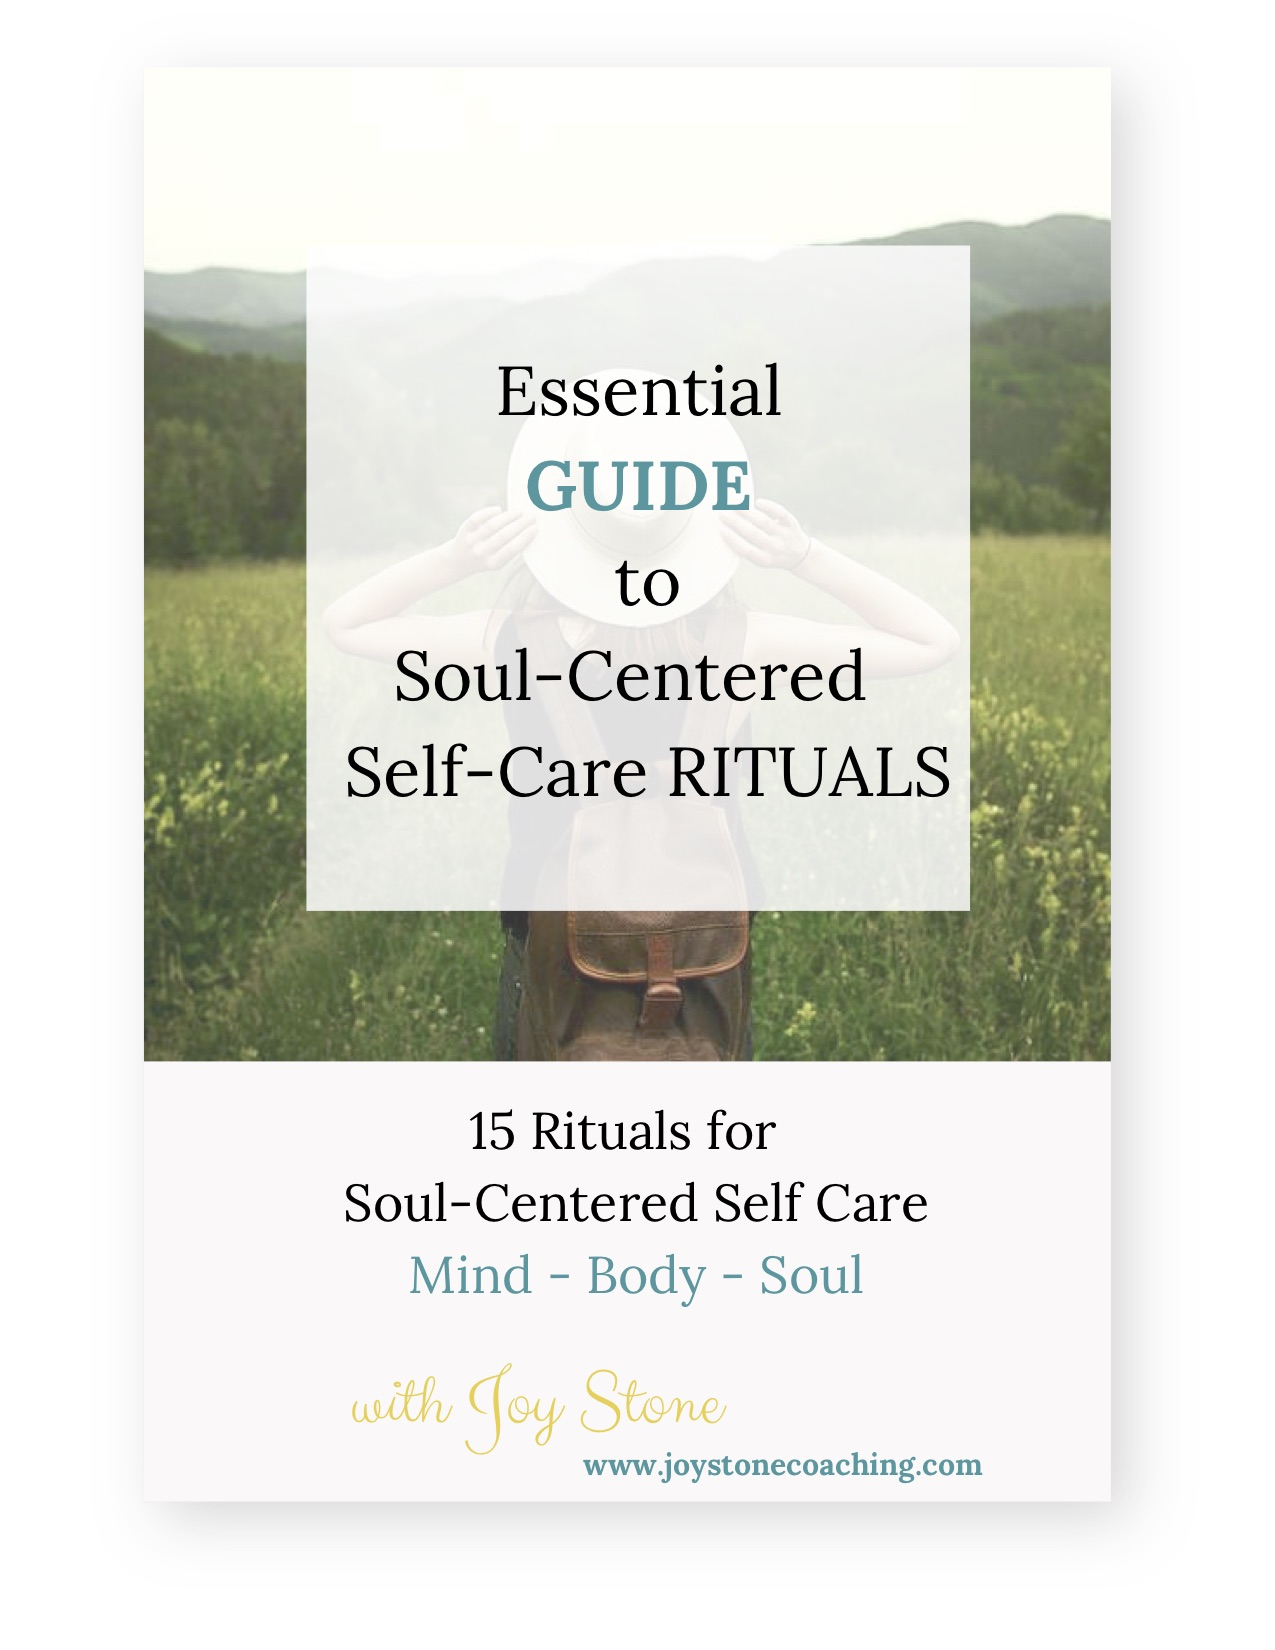 Essential Guide to Soul Centered Self Care Rituals with Joy Stone.jpg